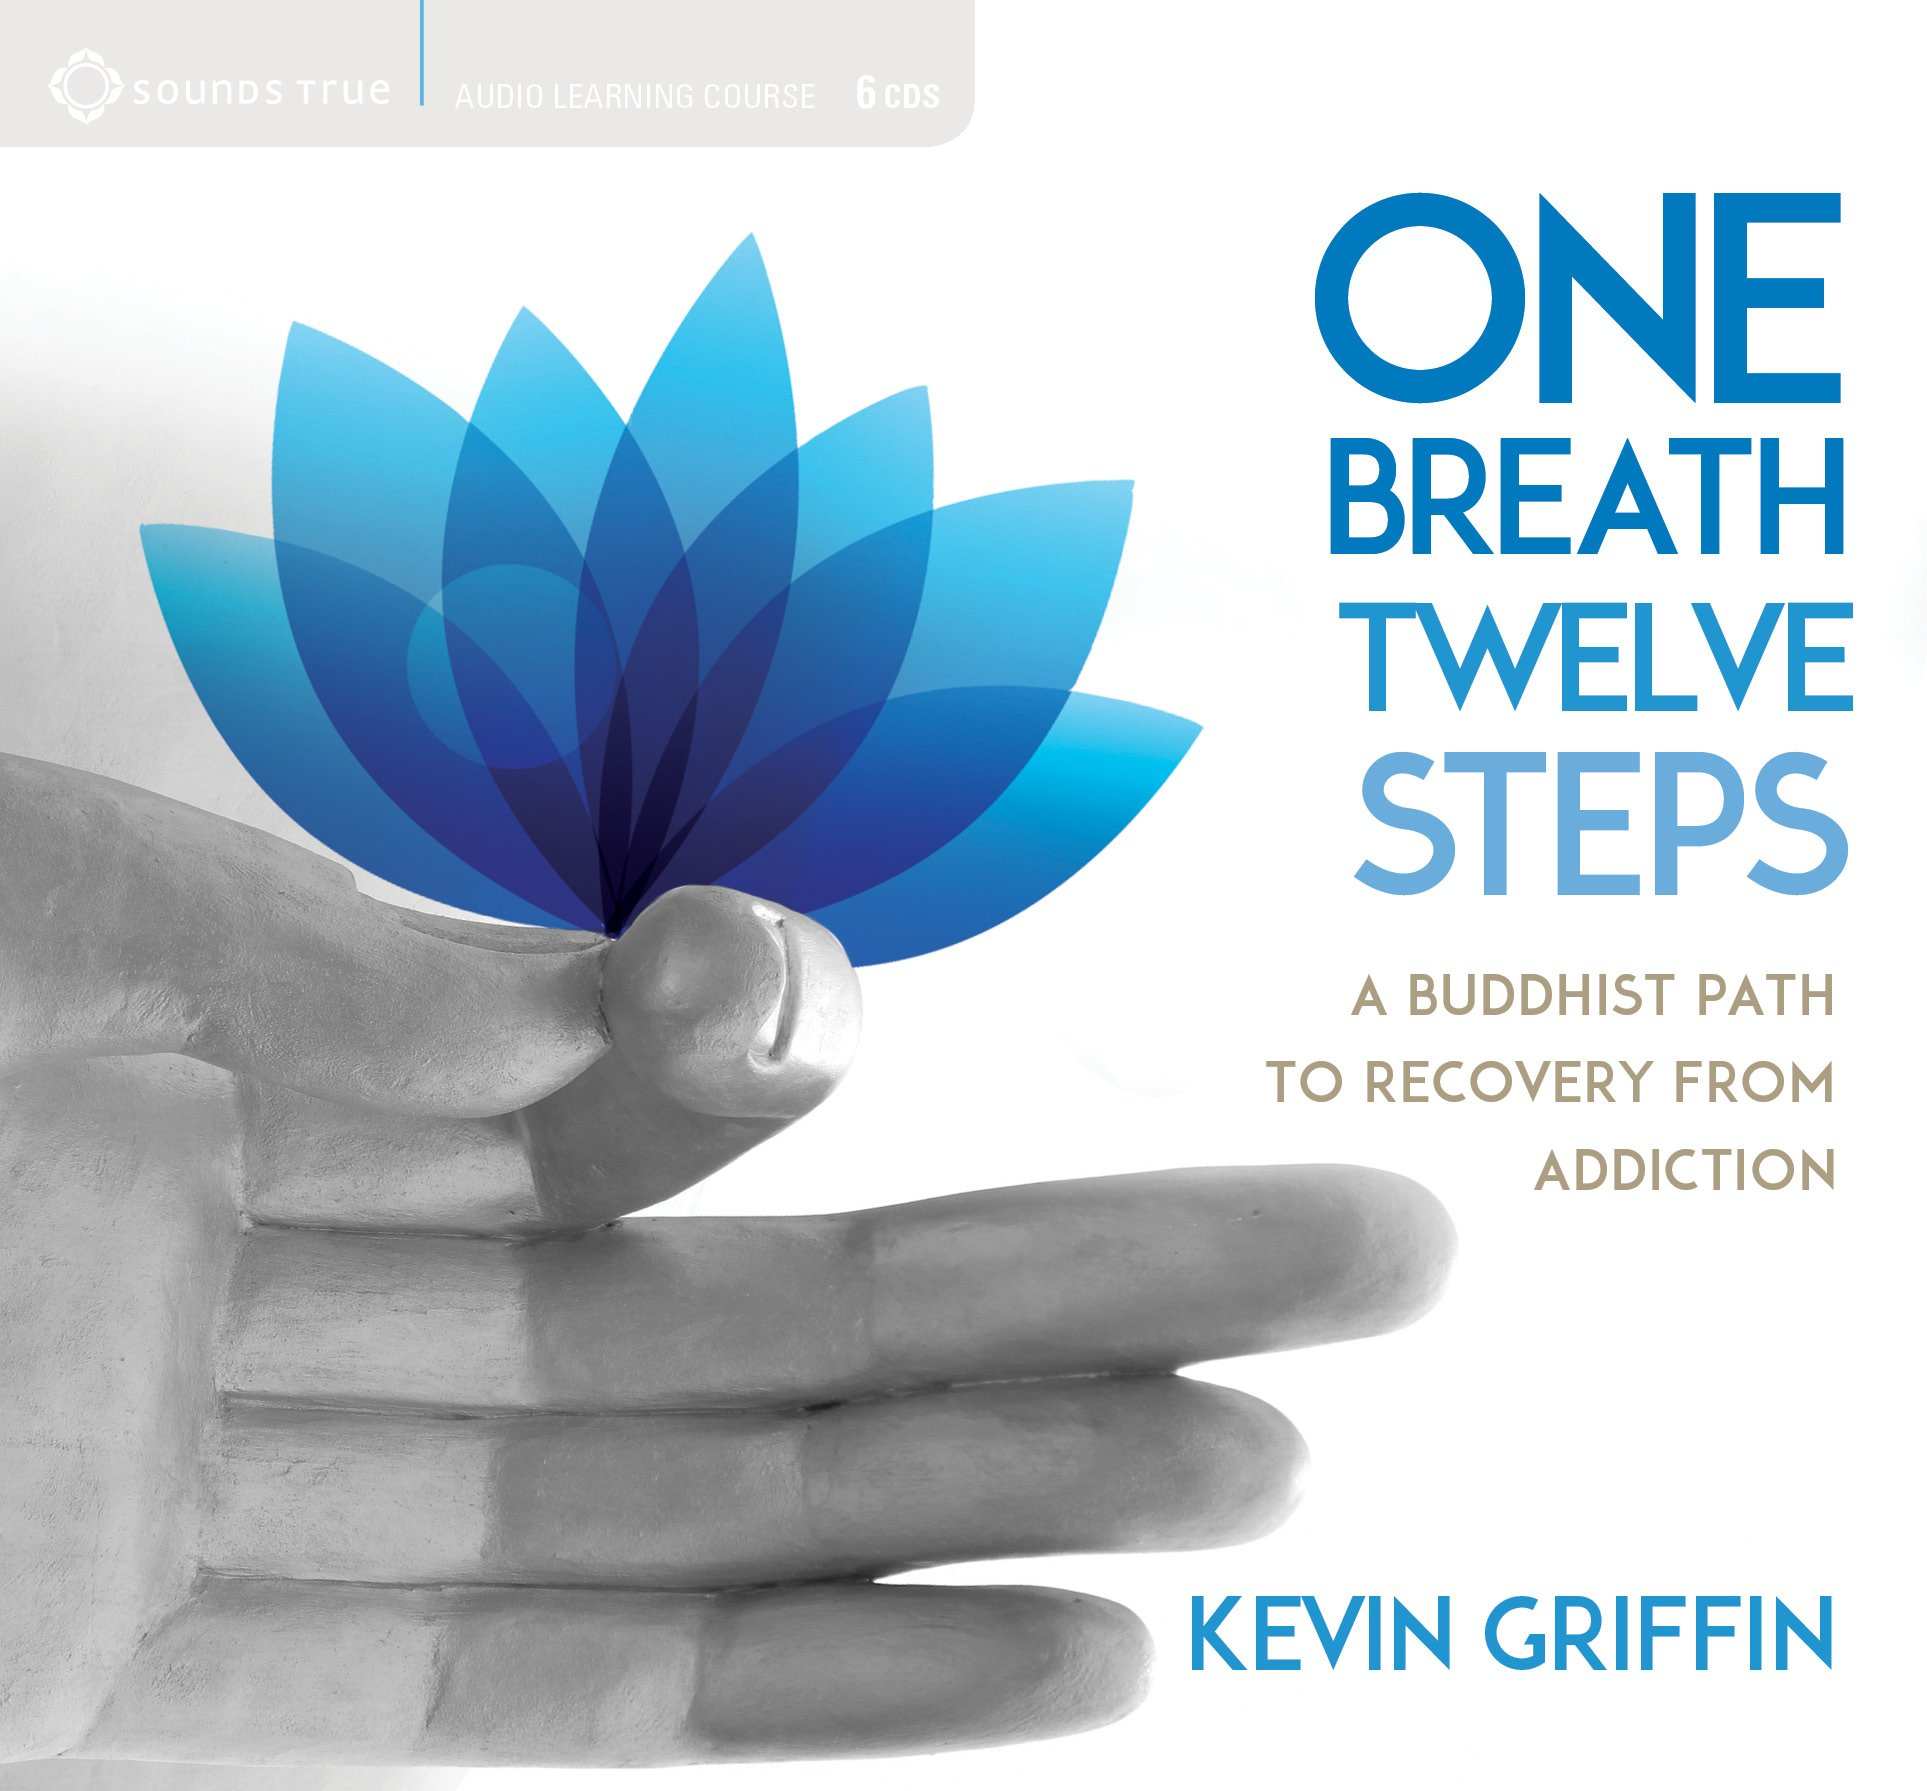 One breath twelve steps a buddhist path to recovery from addiction one breath twelve steps a buddhist path to recovery from addiction kevin griffin 9781622034314 amazon books fandeluxe Images